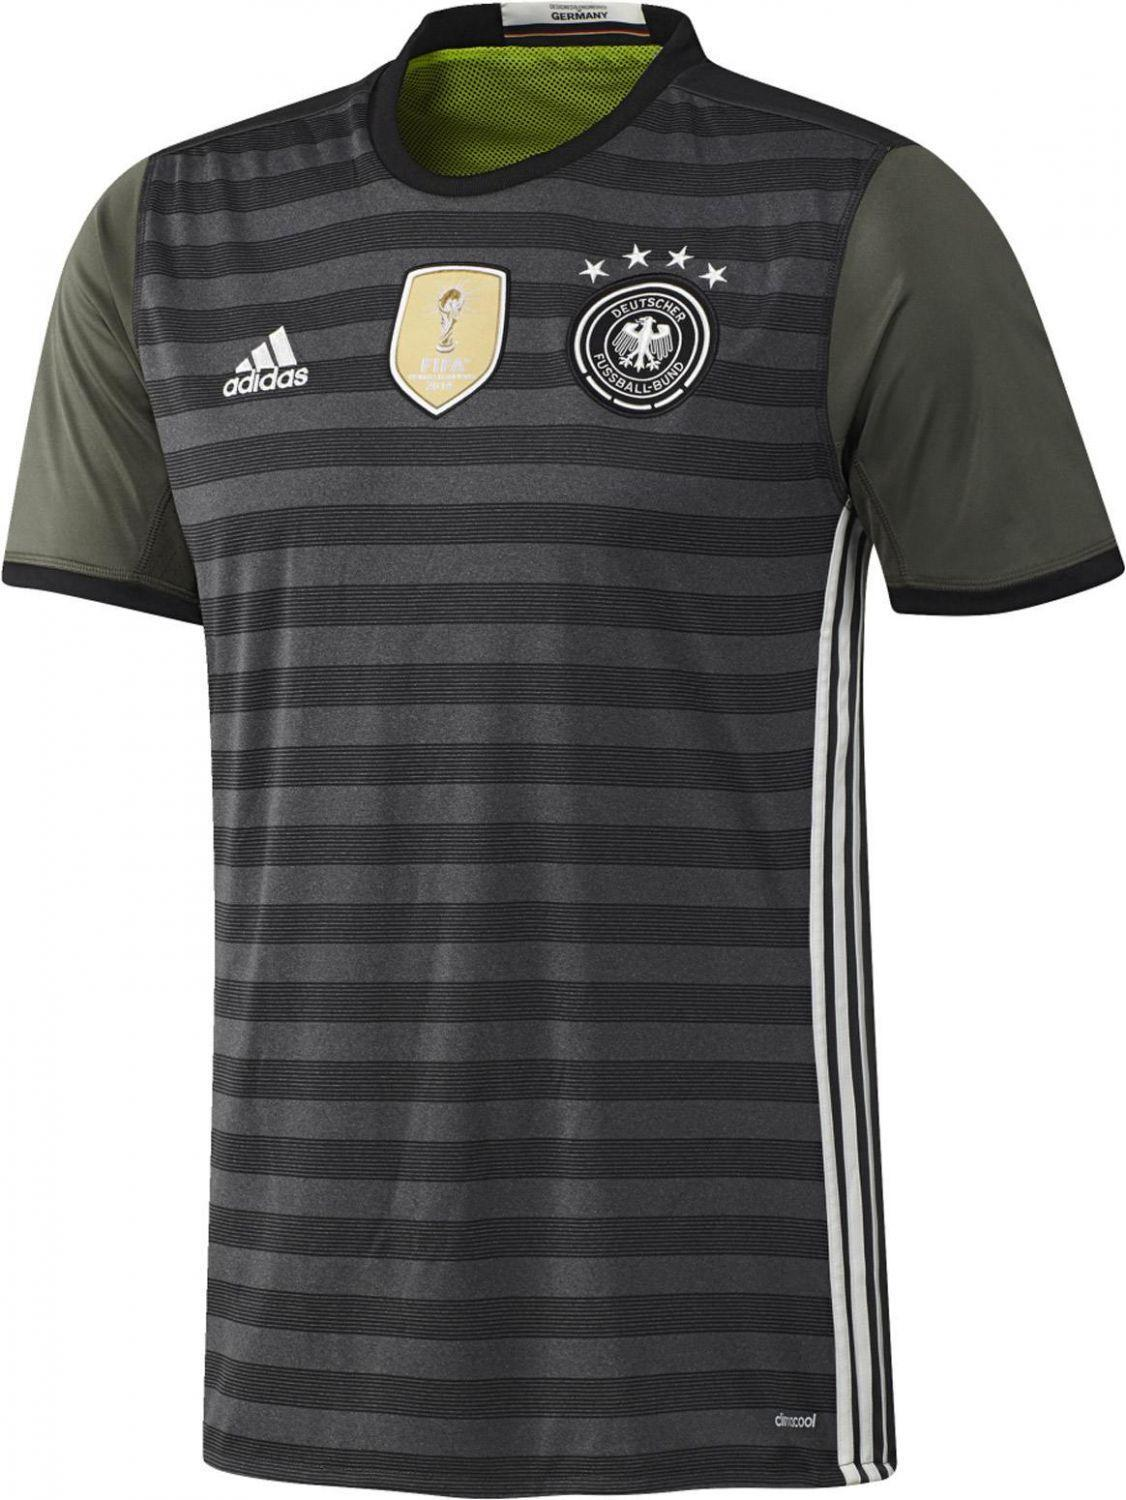 adidas-dfb-away-jersey-ausw-auml-rtstrikot-gr-ouml-szlig-e-s-dark-grey-heather-off-white-base-gr